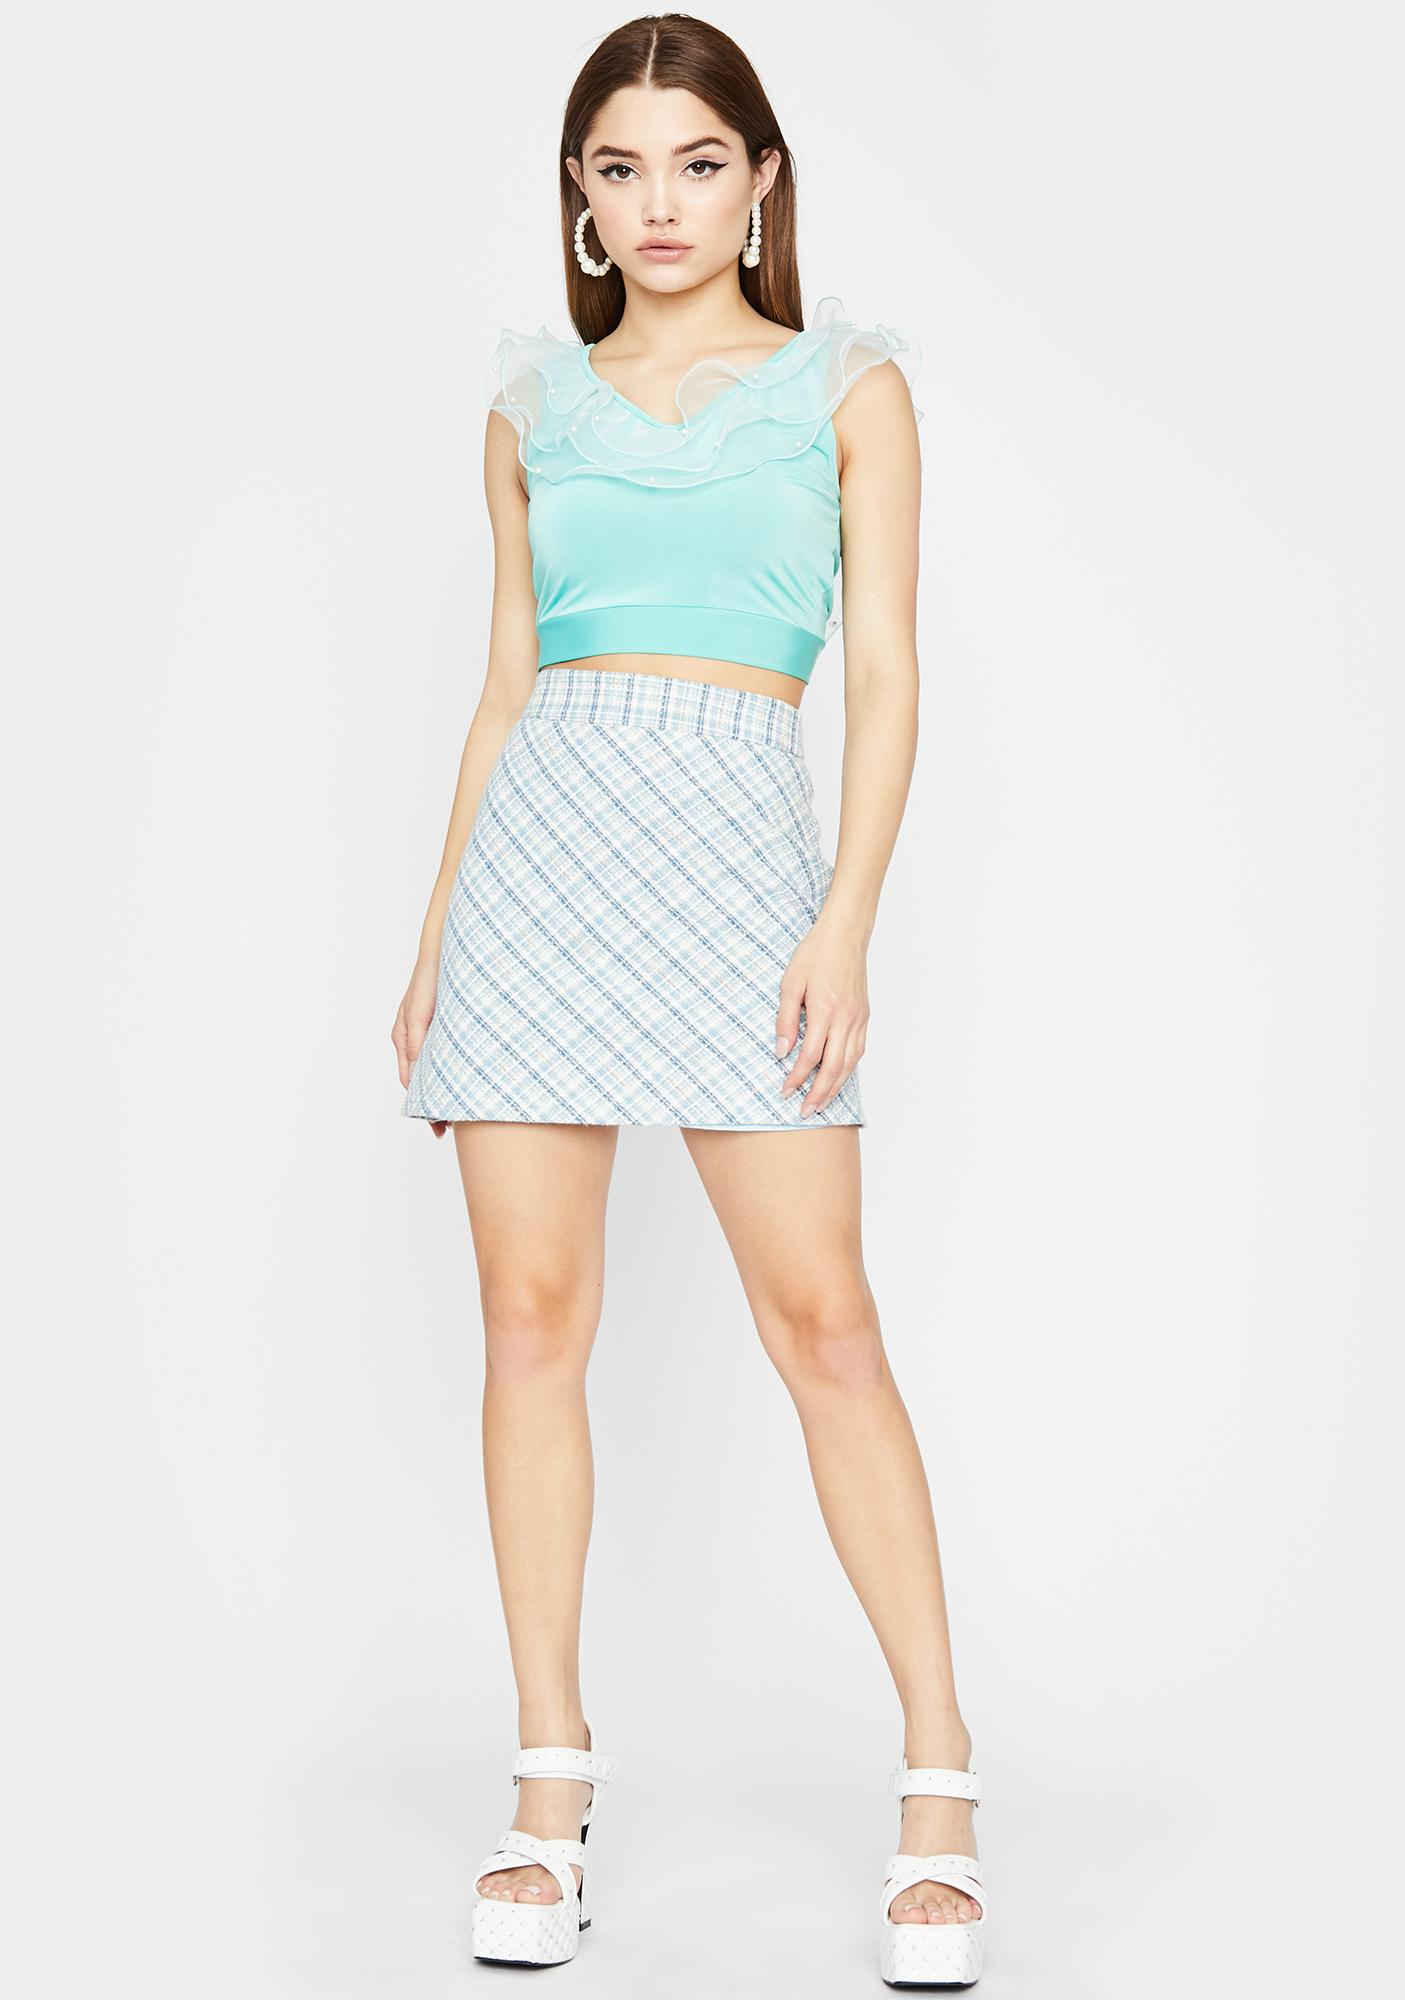 Posh Pixie Crop Top